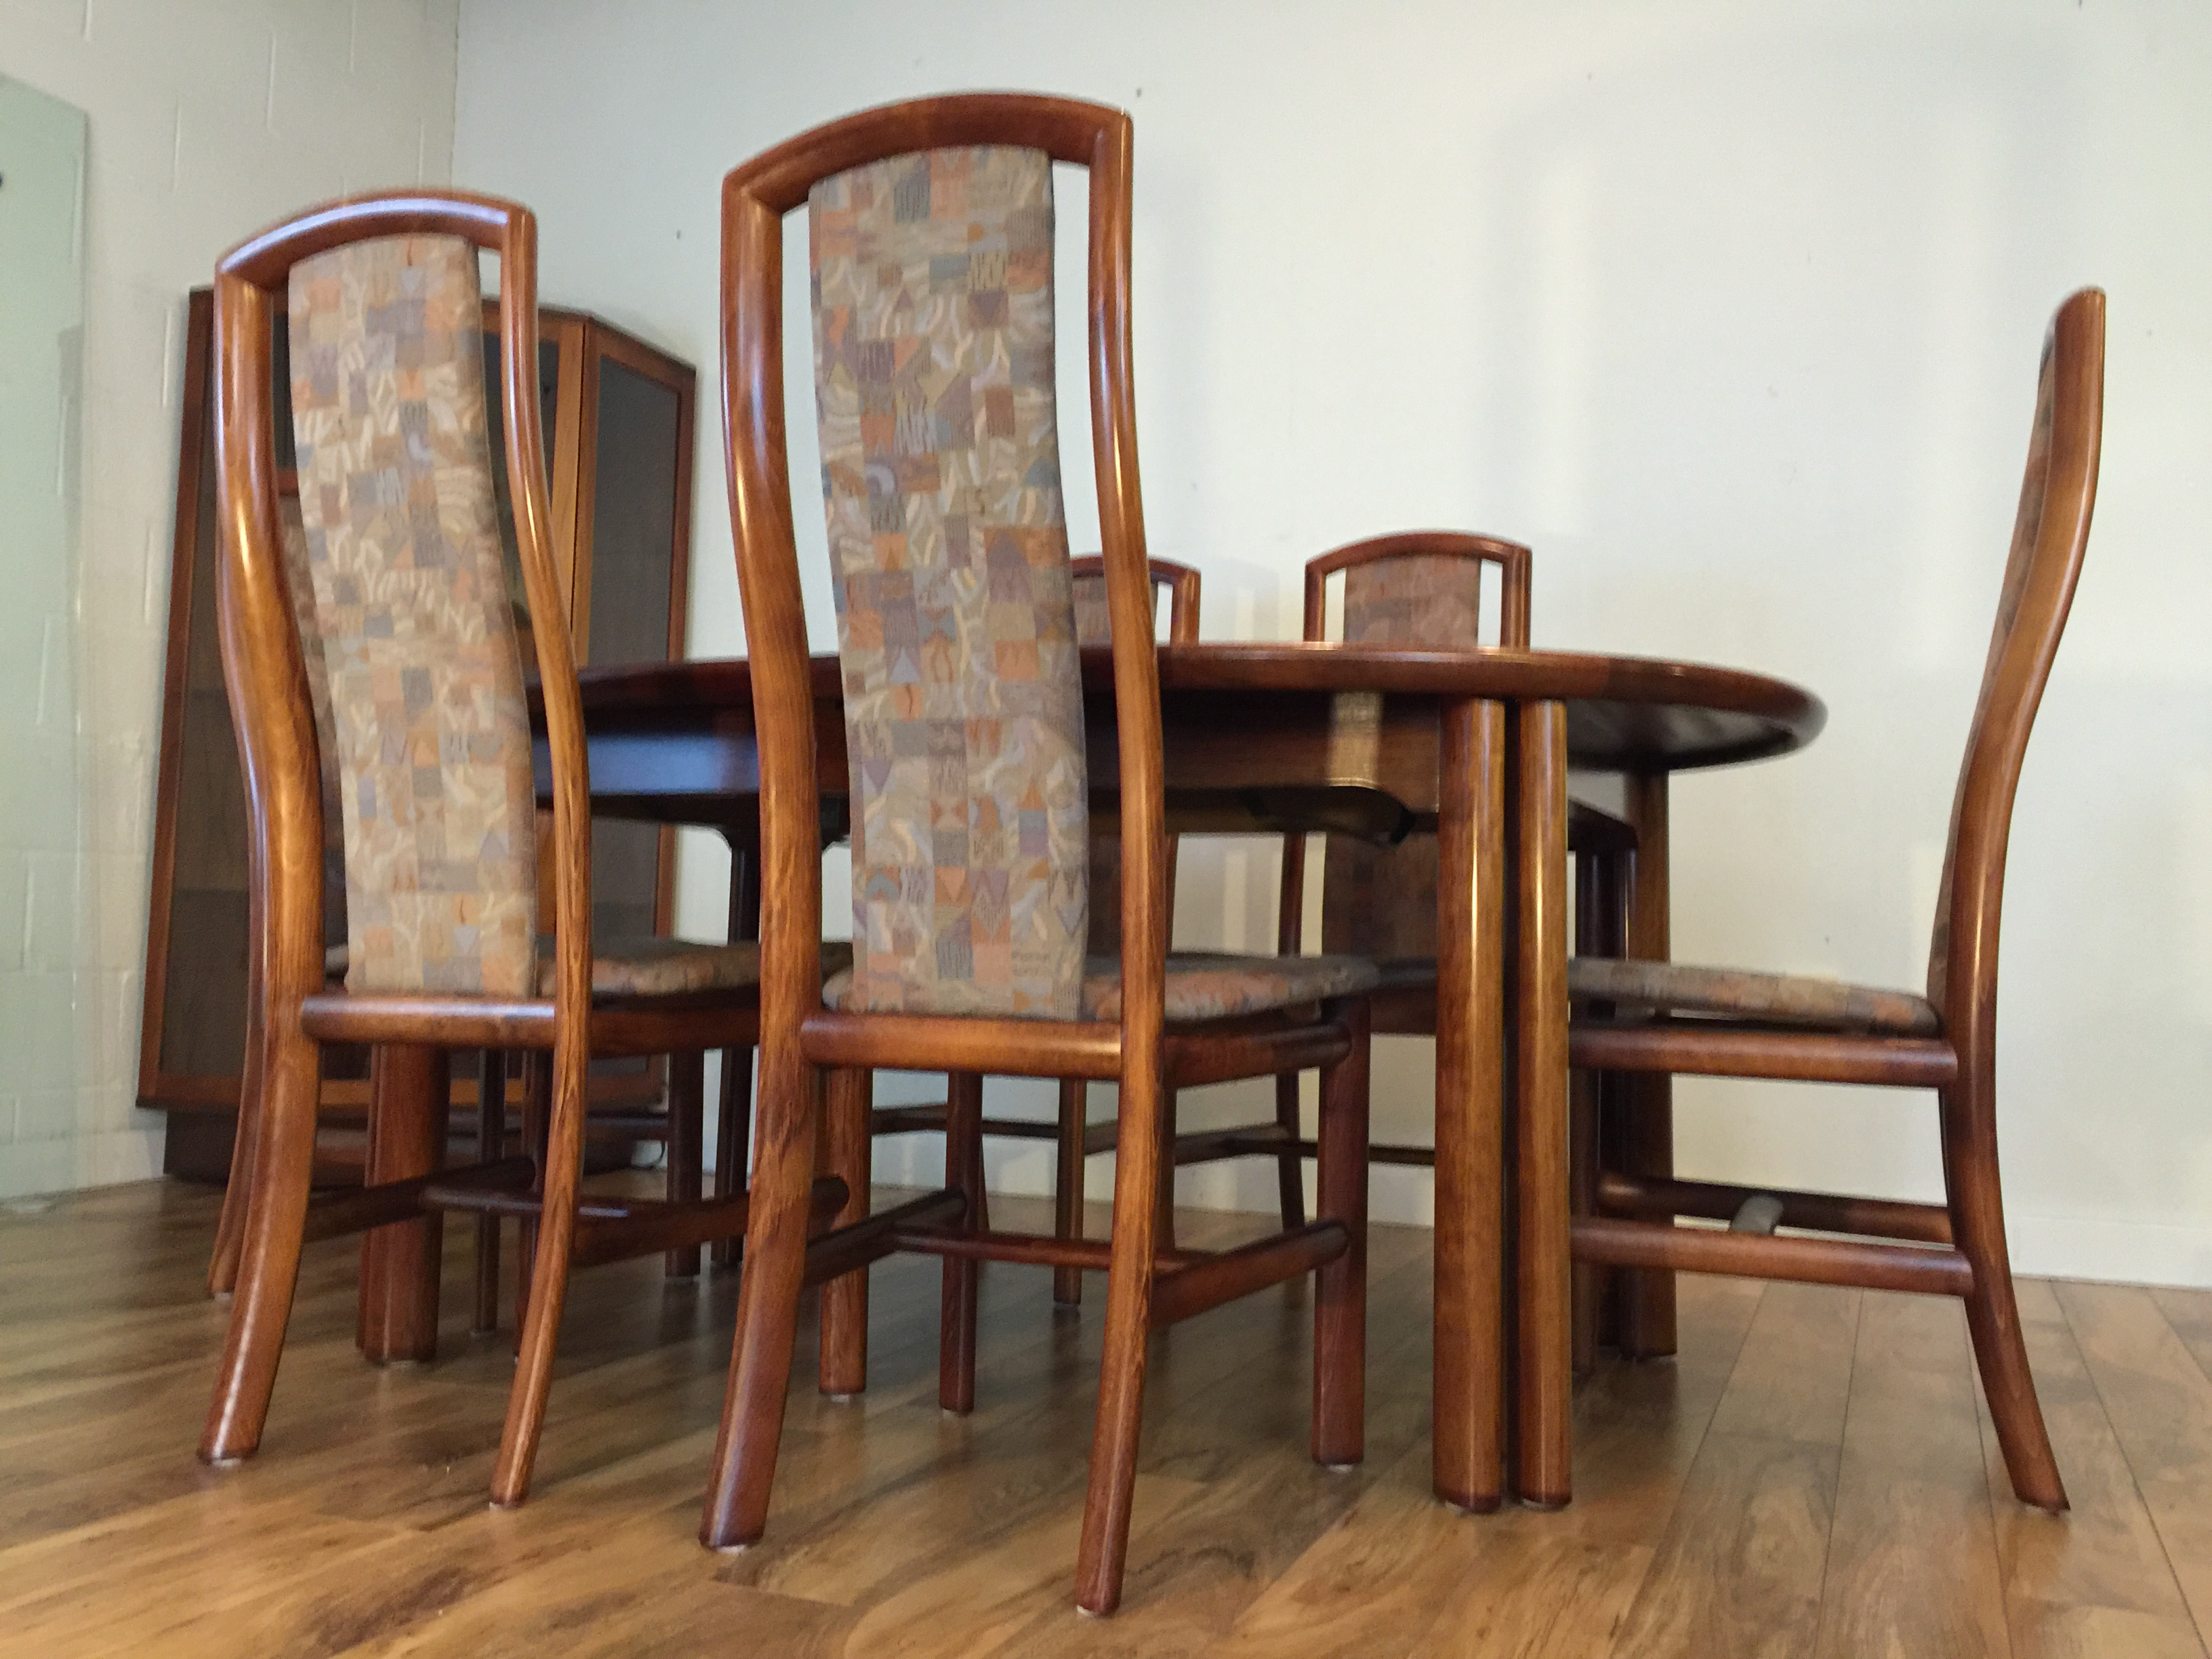 Danish Rosewood Dining Set Table amp 8 Chairs Chairish : 71db69af cdff 447d b169 a7768ef0364aaspectfitampwidth640ampheight640 from www.chairish.com size 640 x 640 jpeg 43kB